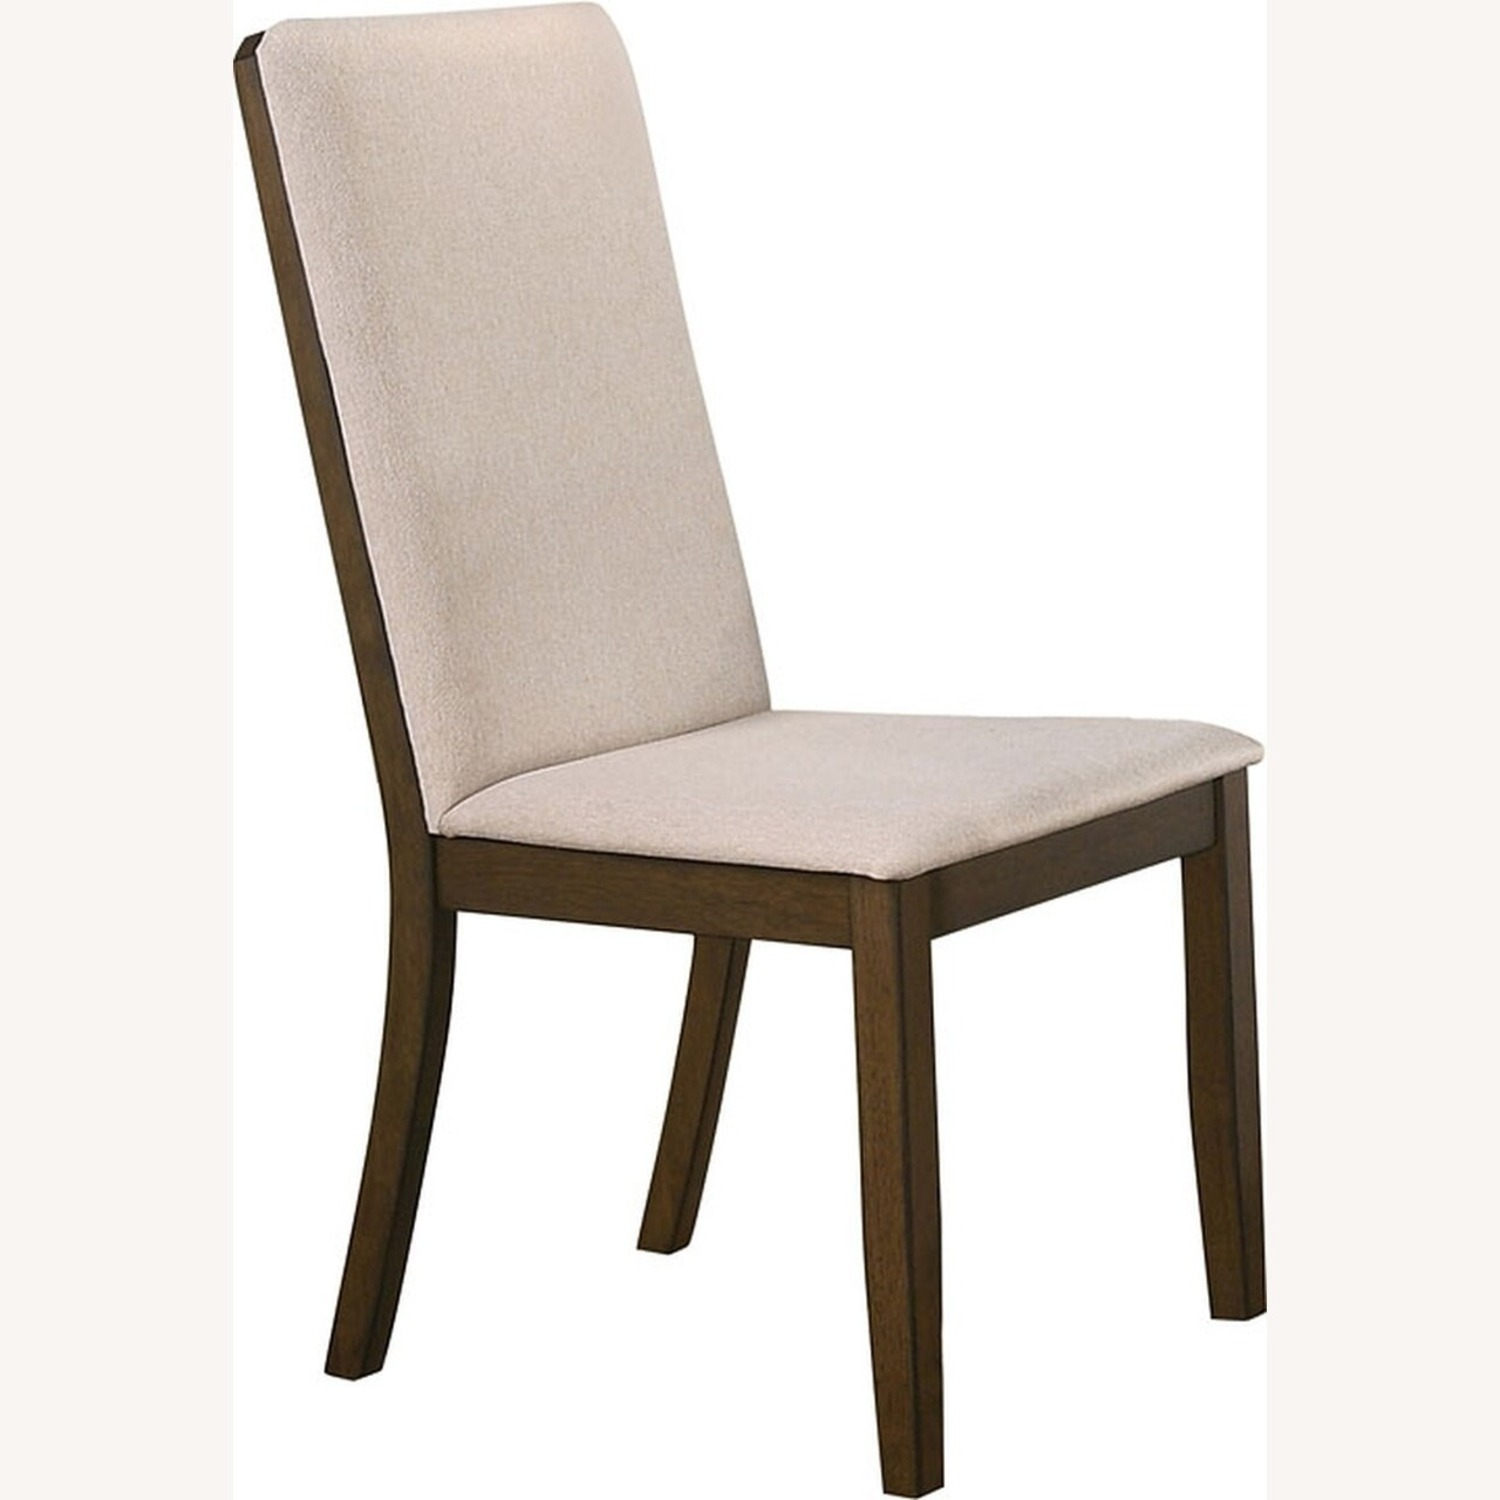 Transitional Side Chair In Latte Fabric - image-0